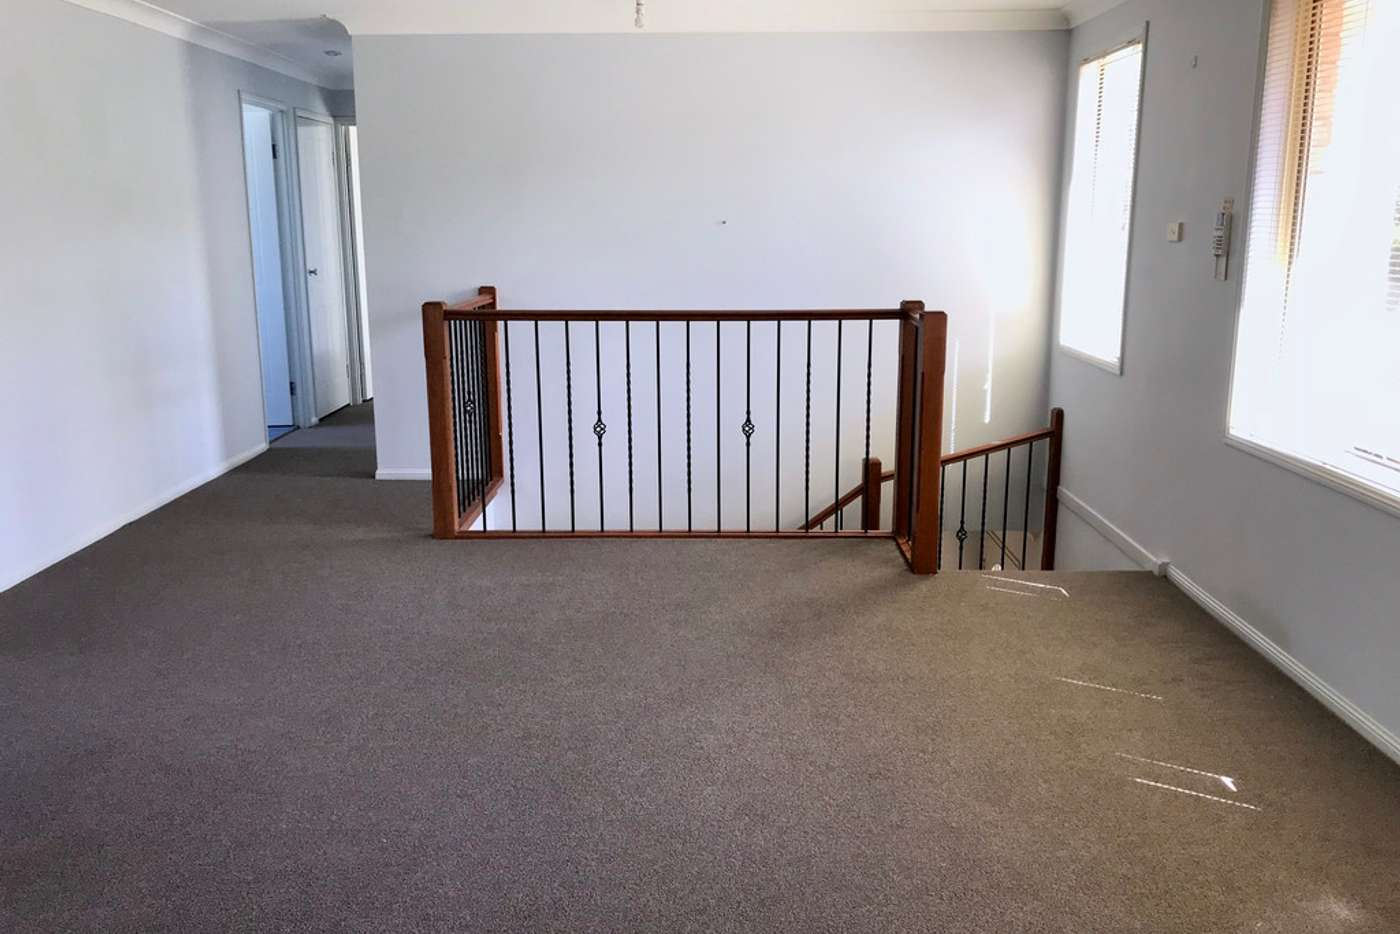 Seventh view of Homely house listing, 18 Charles Street, Baulkham Hills NSW 2153